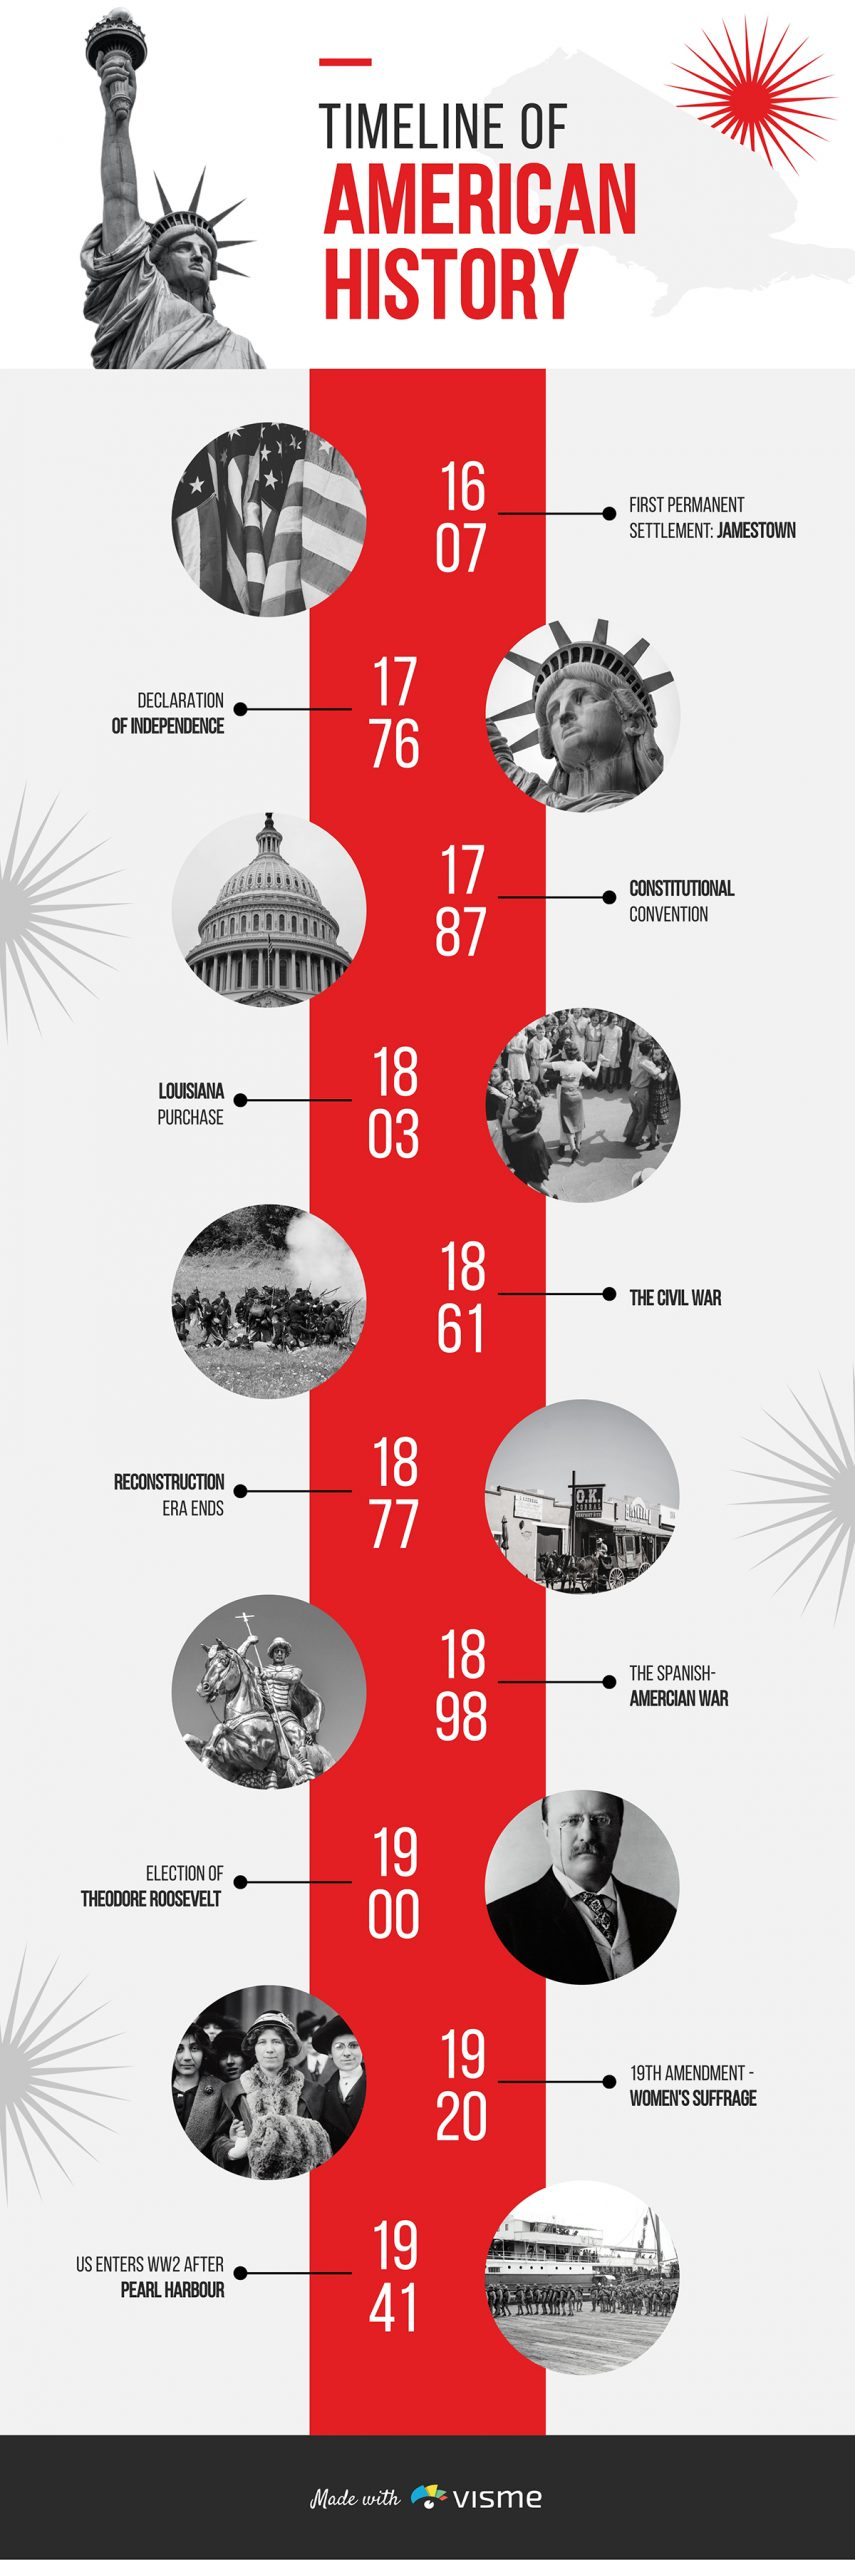 An American history timeline template available in Visme.